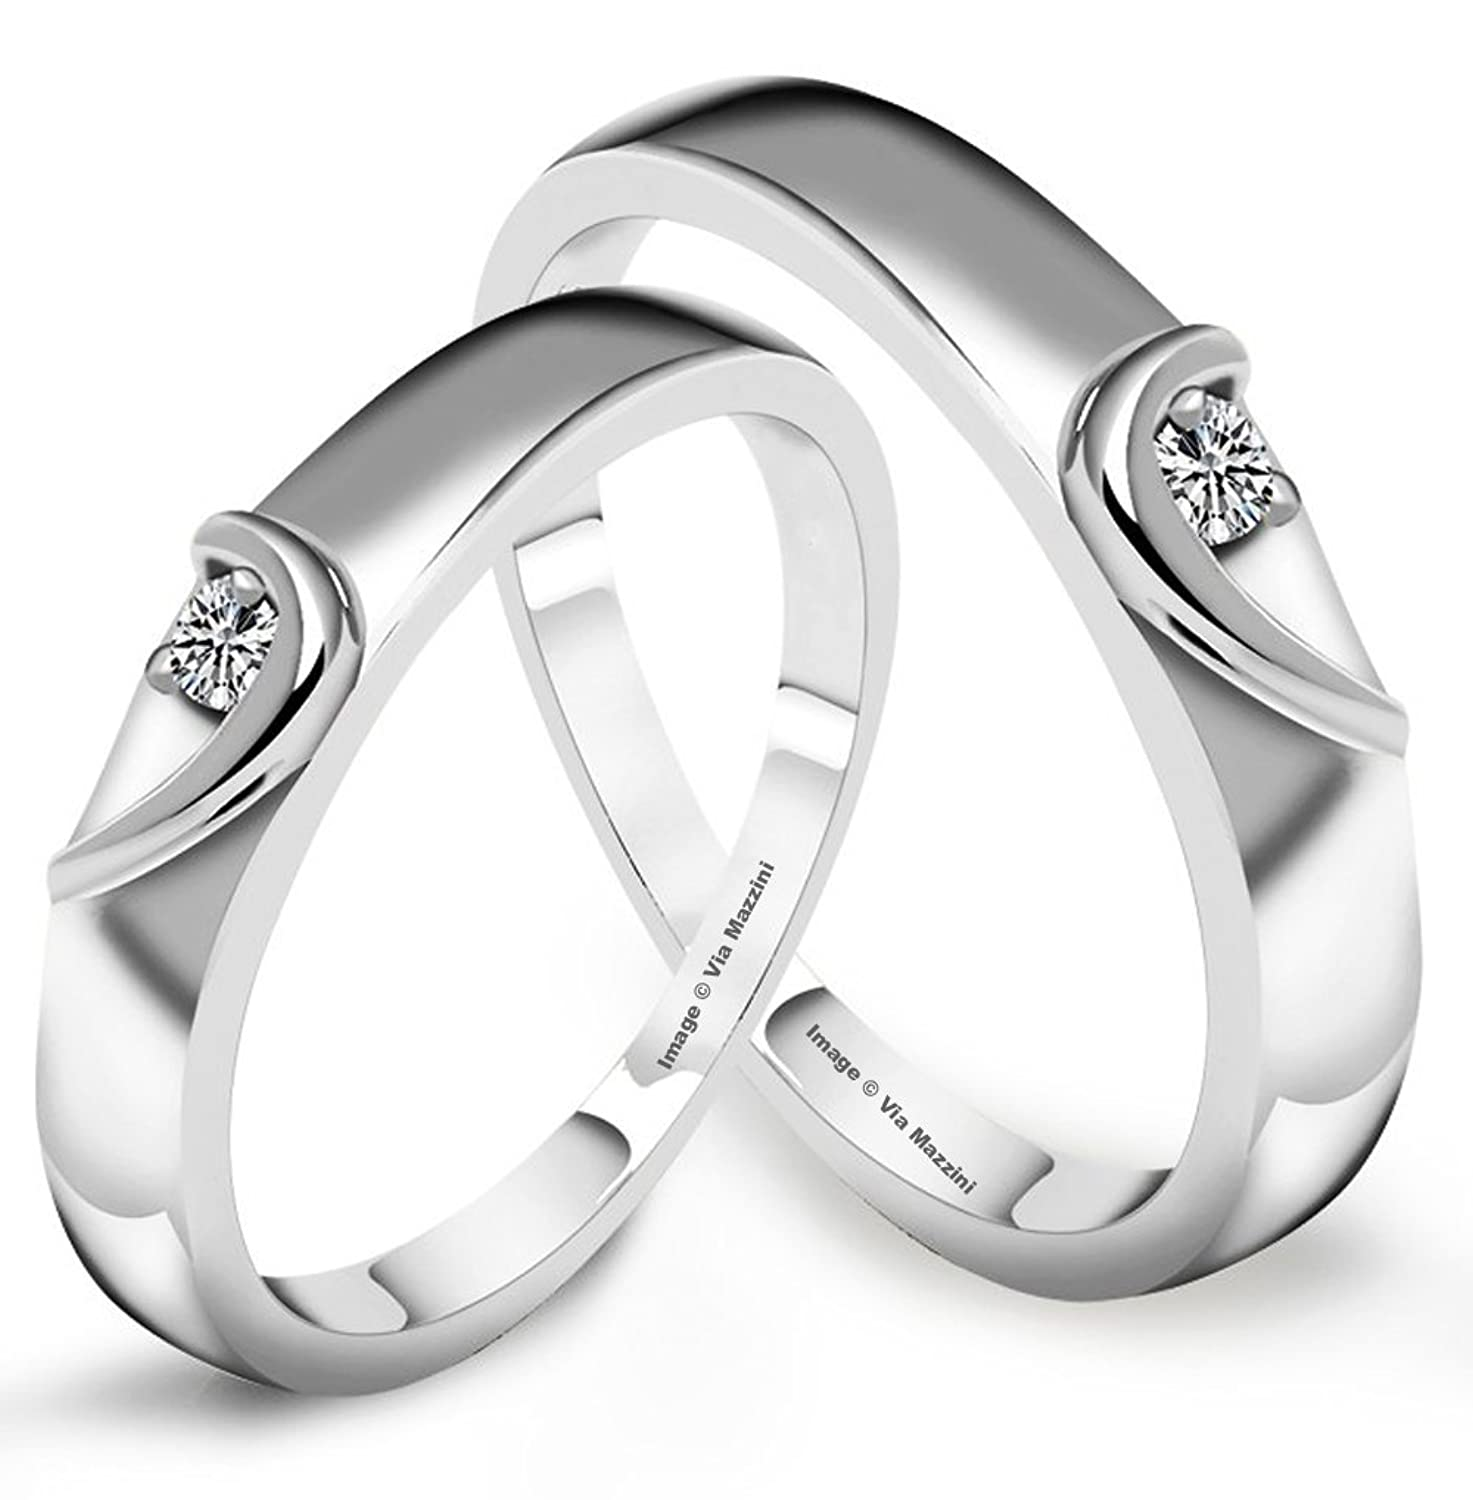 clear rings love endless us knot ring jewelry en cz pandora sparkling